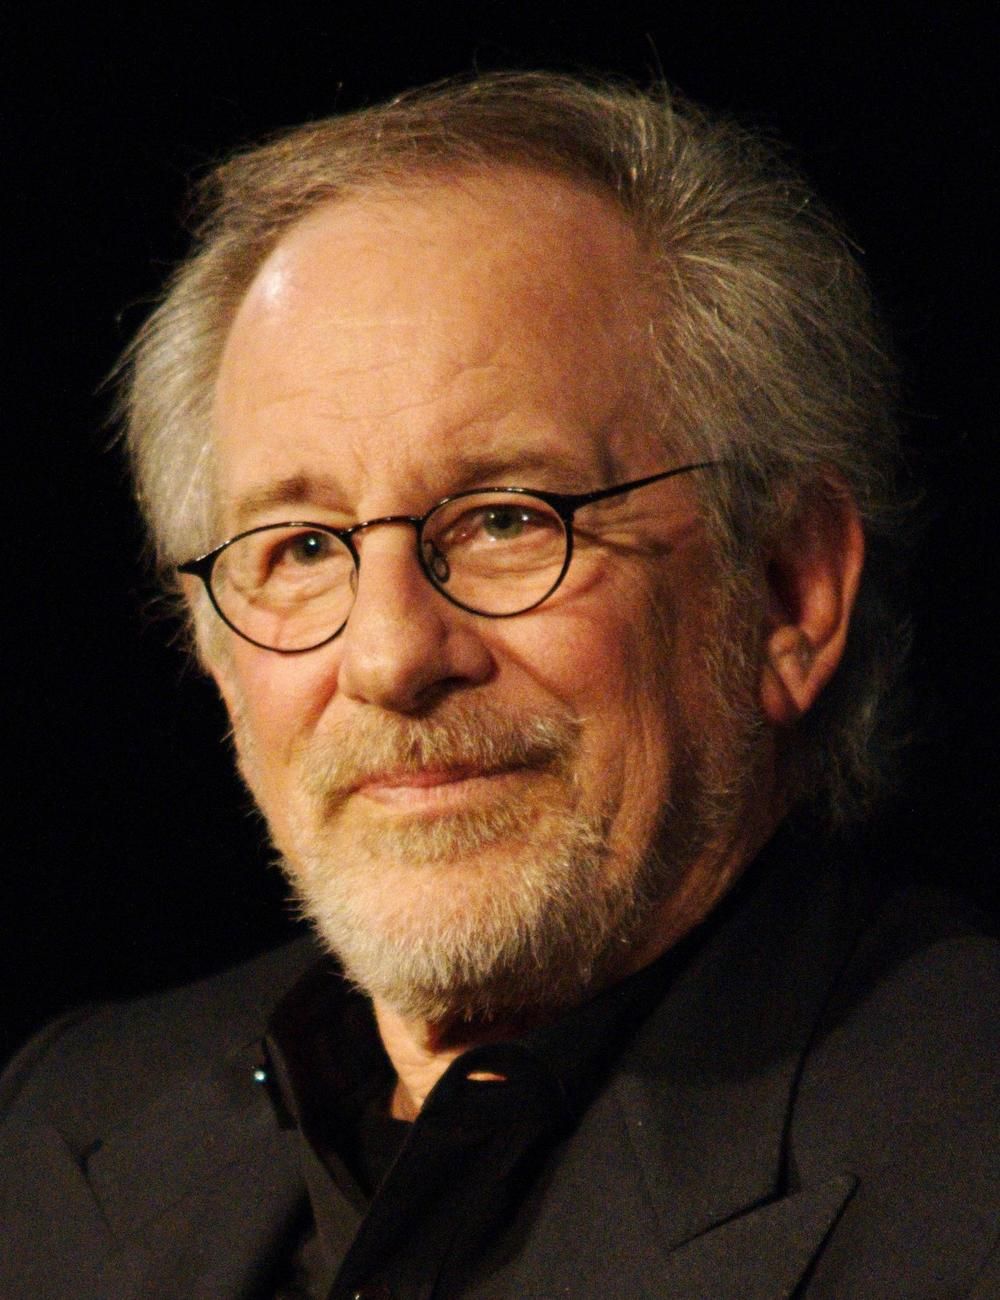 Steven Spielberg. Credit: Romain DUBOIS via Wikimedia Commons.